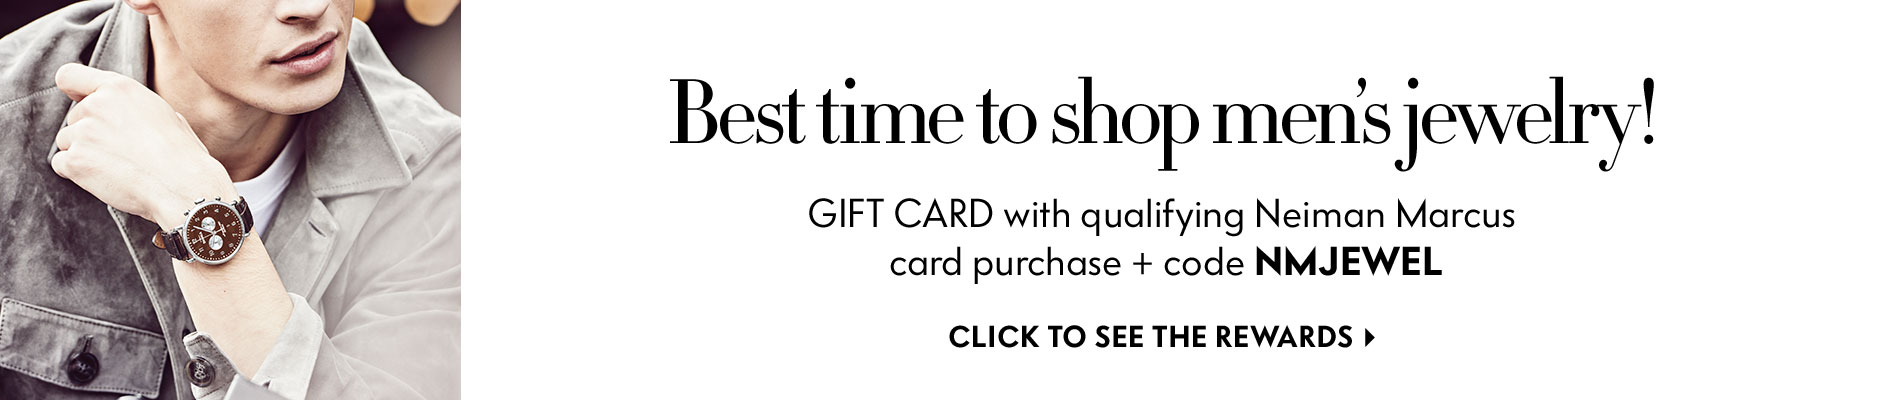 Best time to shop men's jewelry! Get a gift card when you use your NM card + code NMJEWEL